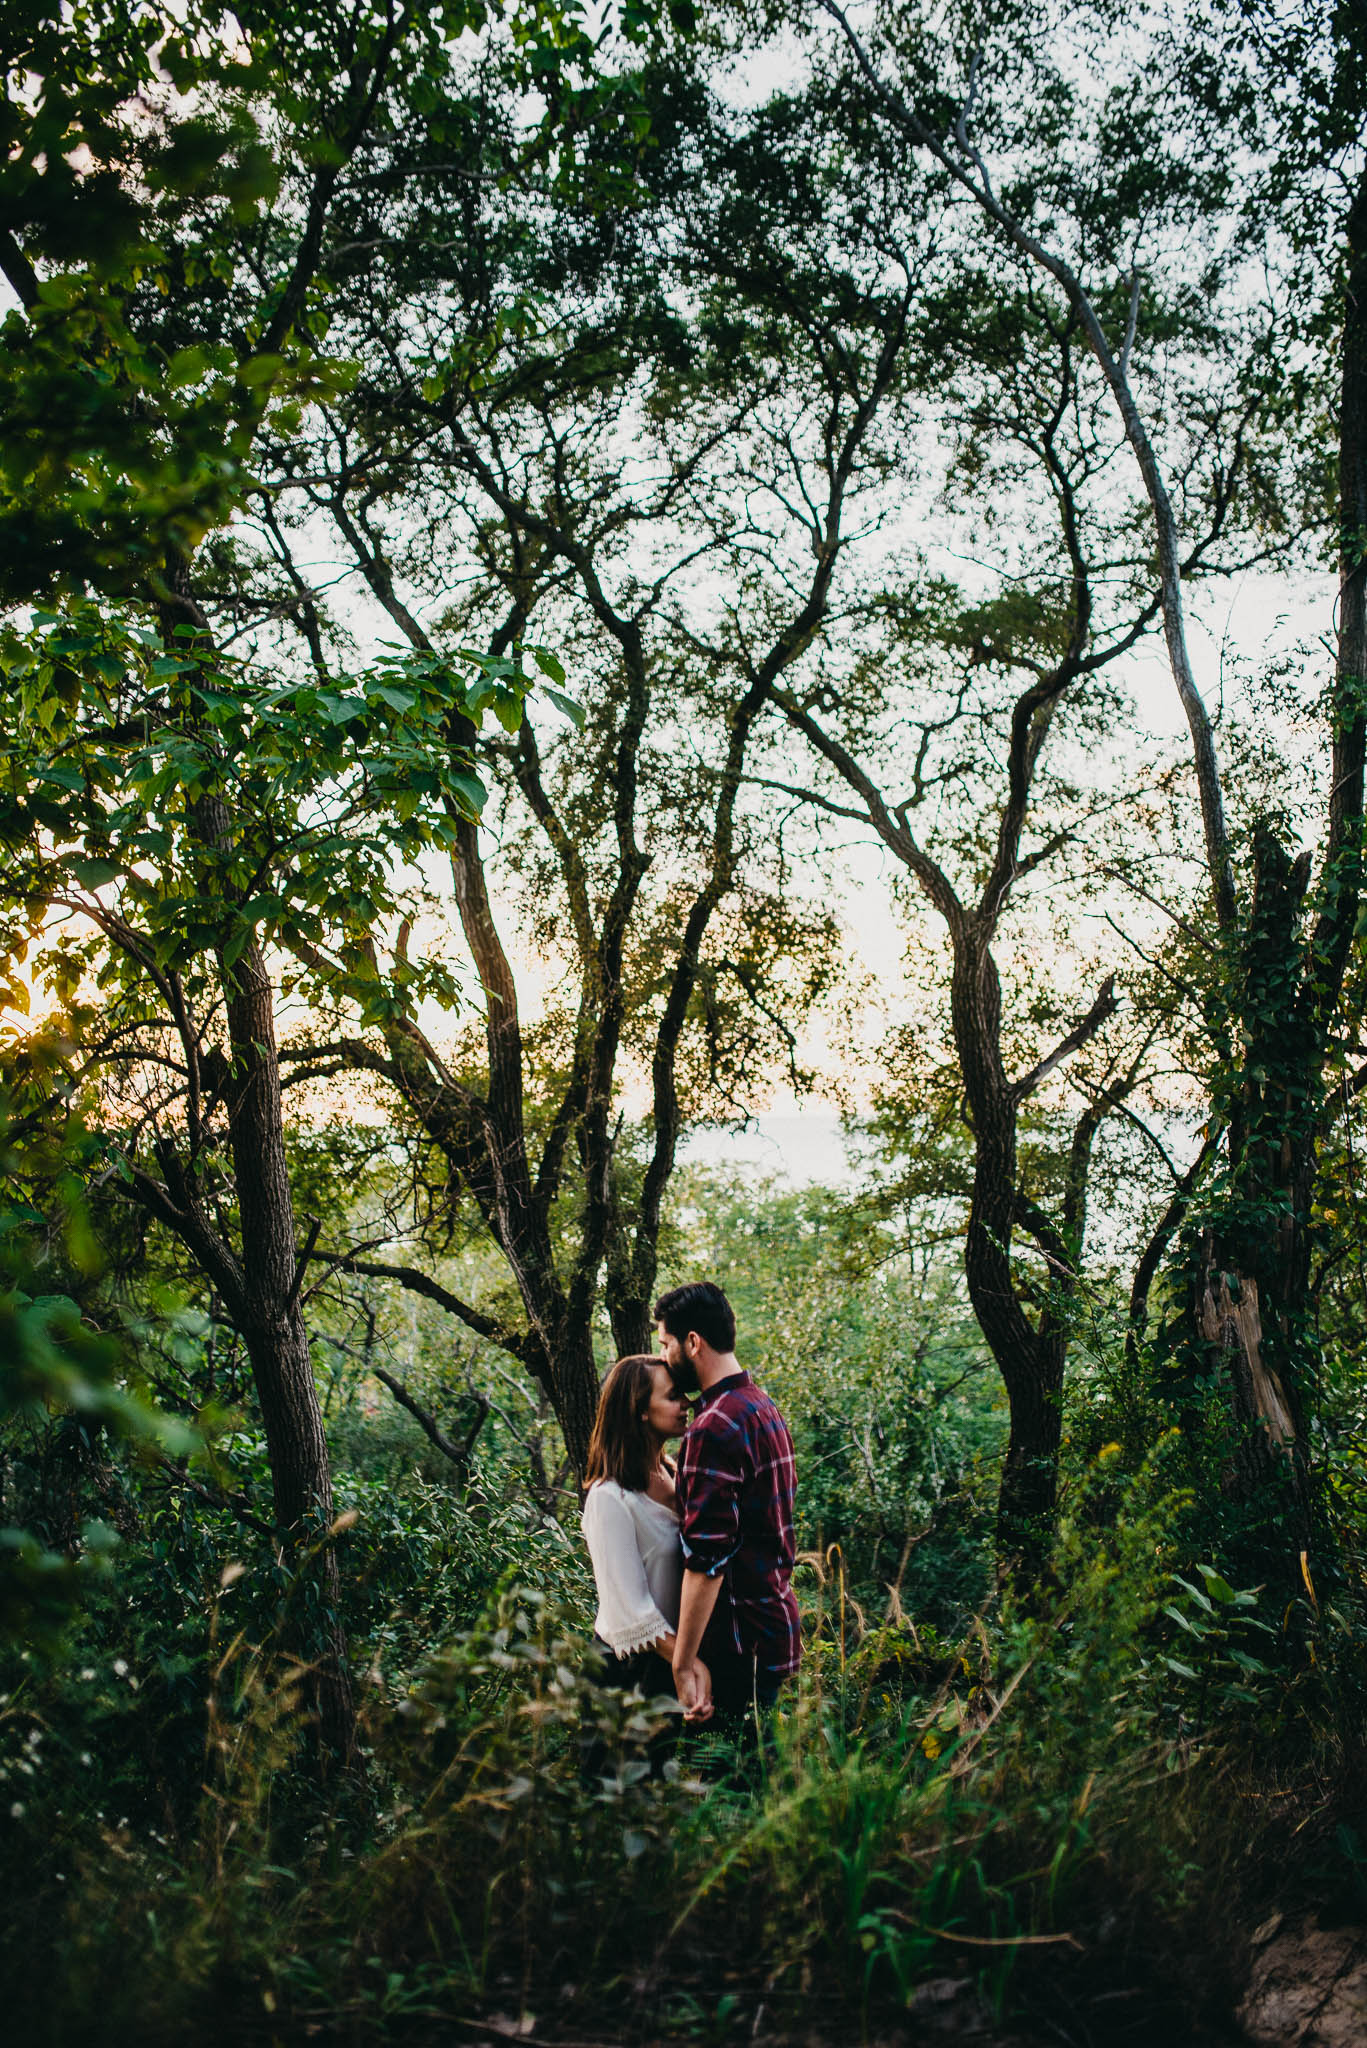 man kissing woman's forehead in the forest during sunset